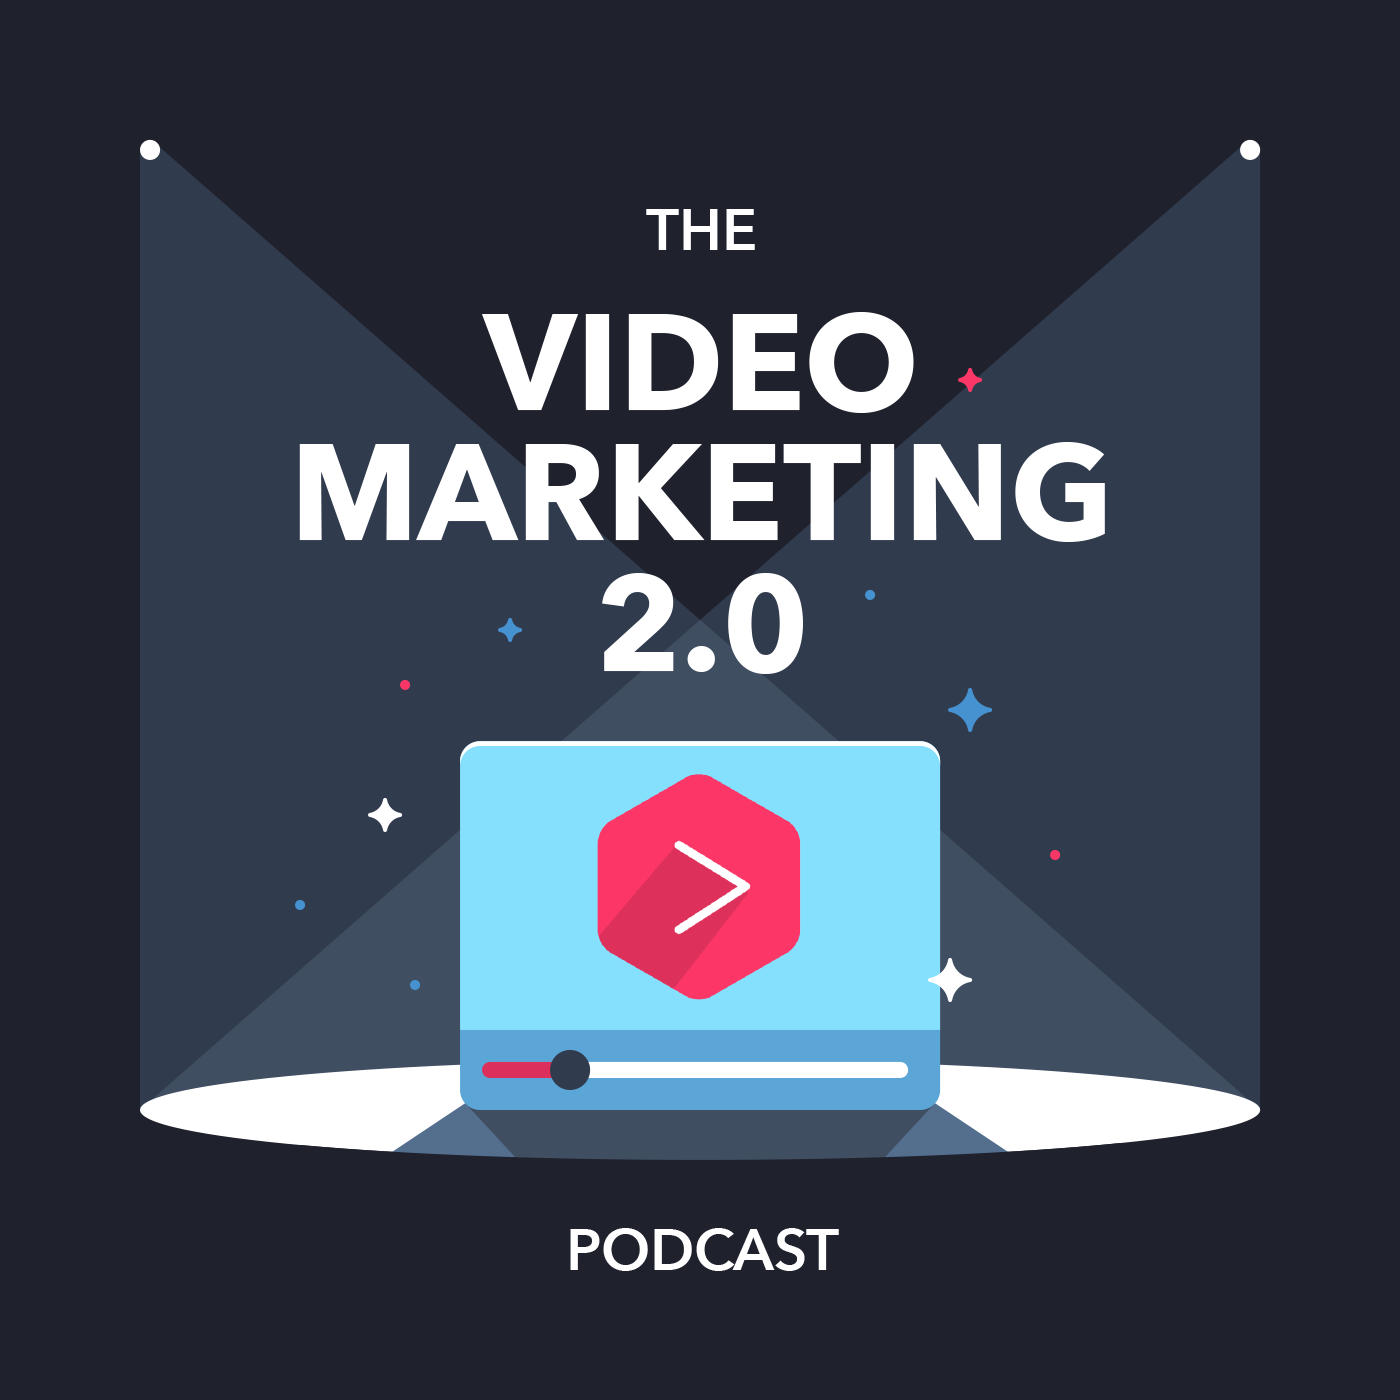 Video Marketing 2.0